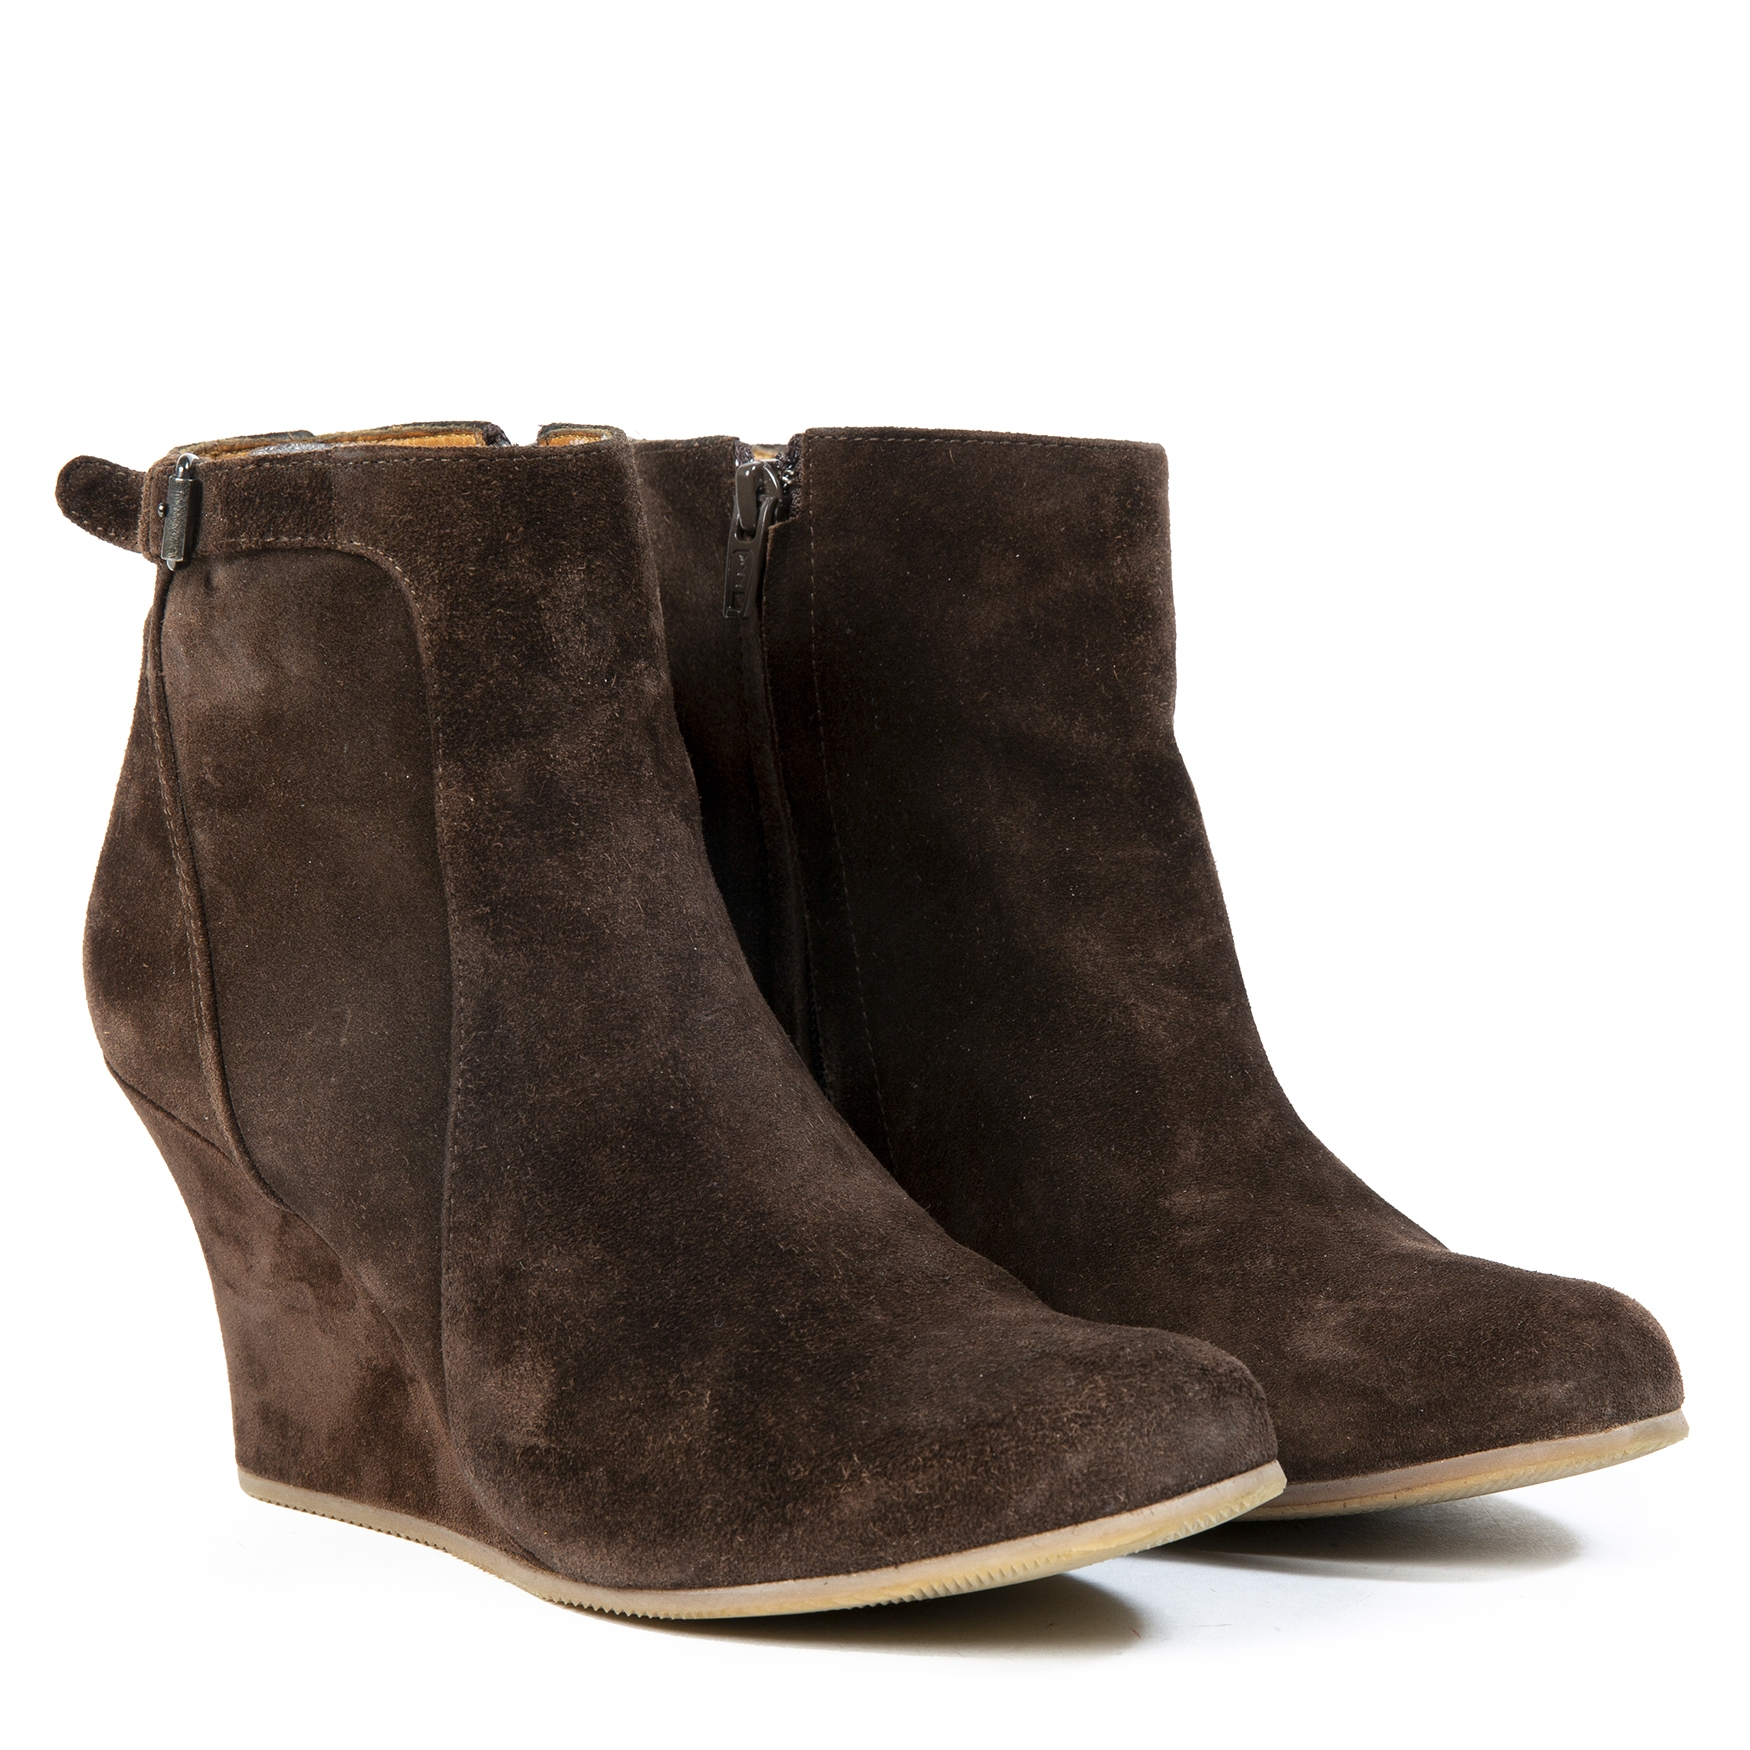 Lanvin Suede Wedge Boots for the best price